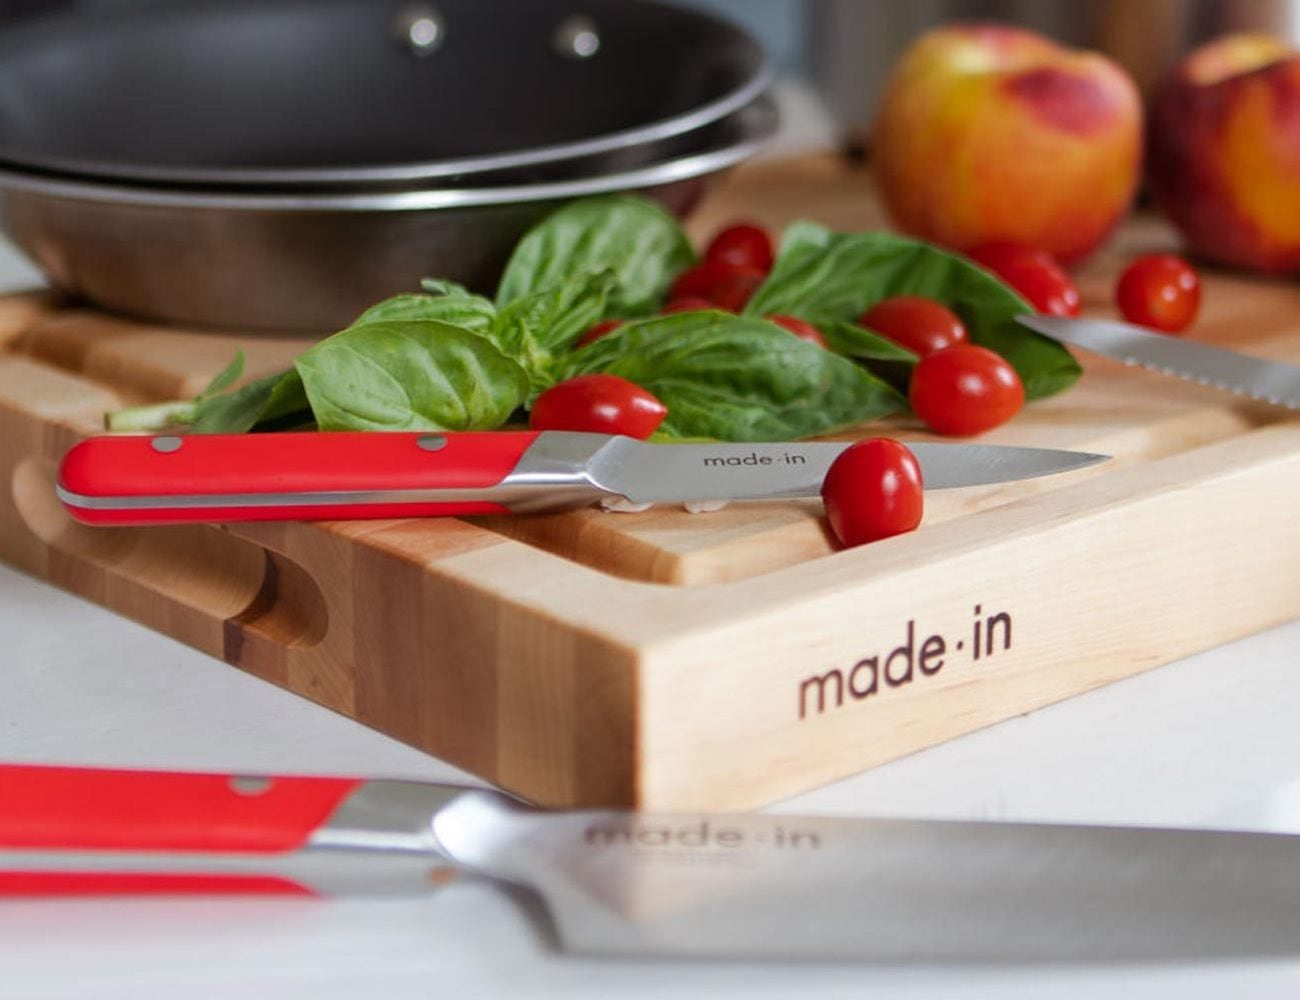 Made In Knives 3-Piece Knife Set is built with nitrogen-treated blades